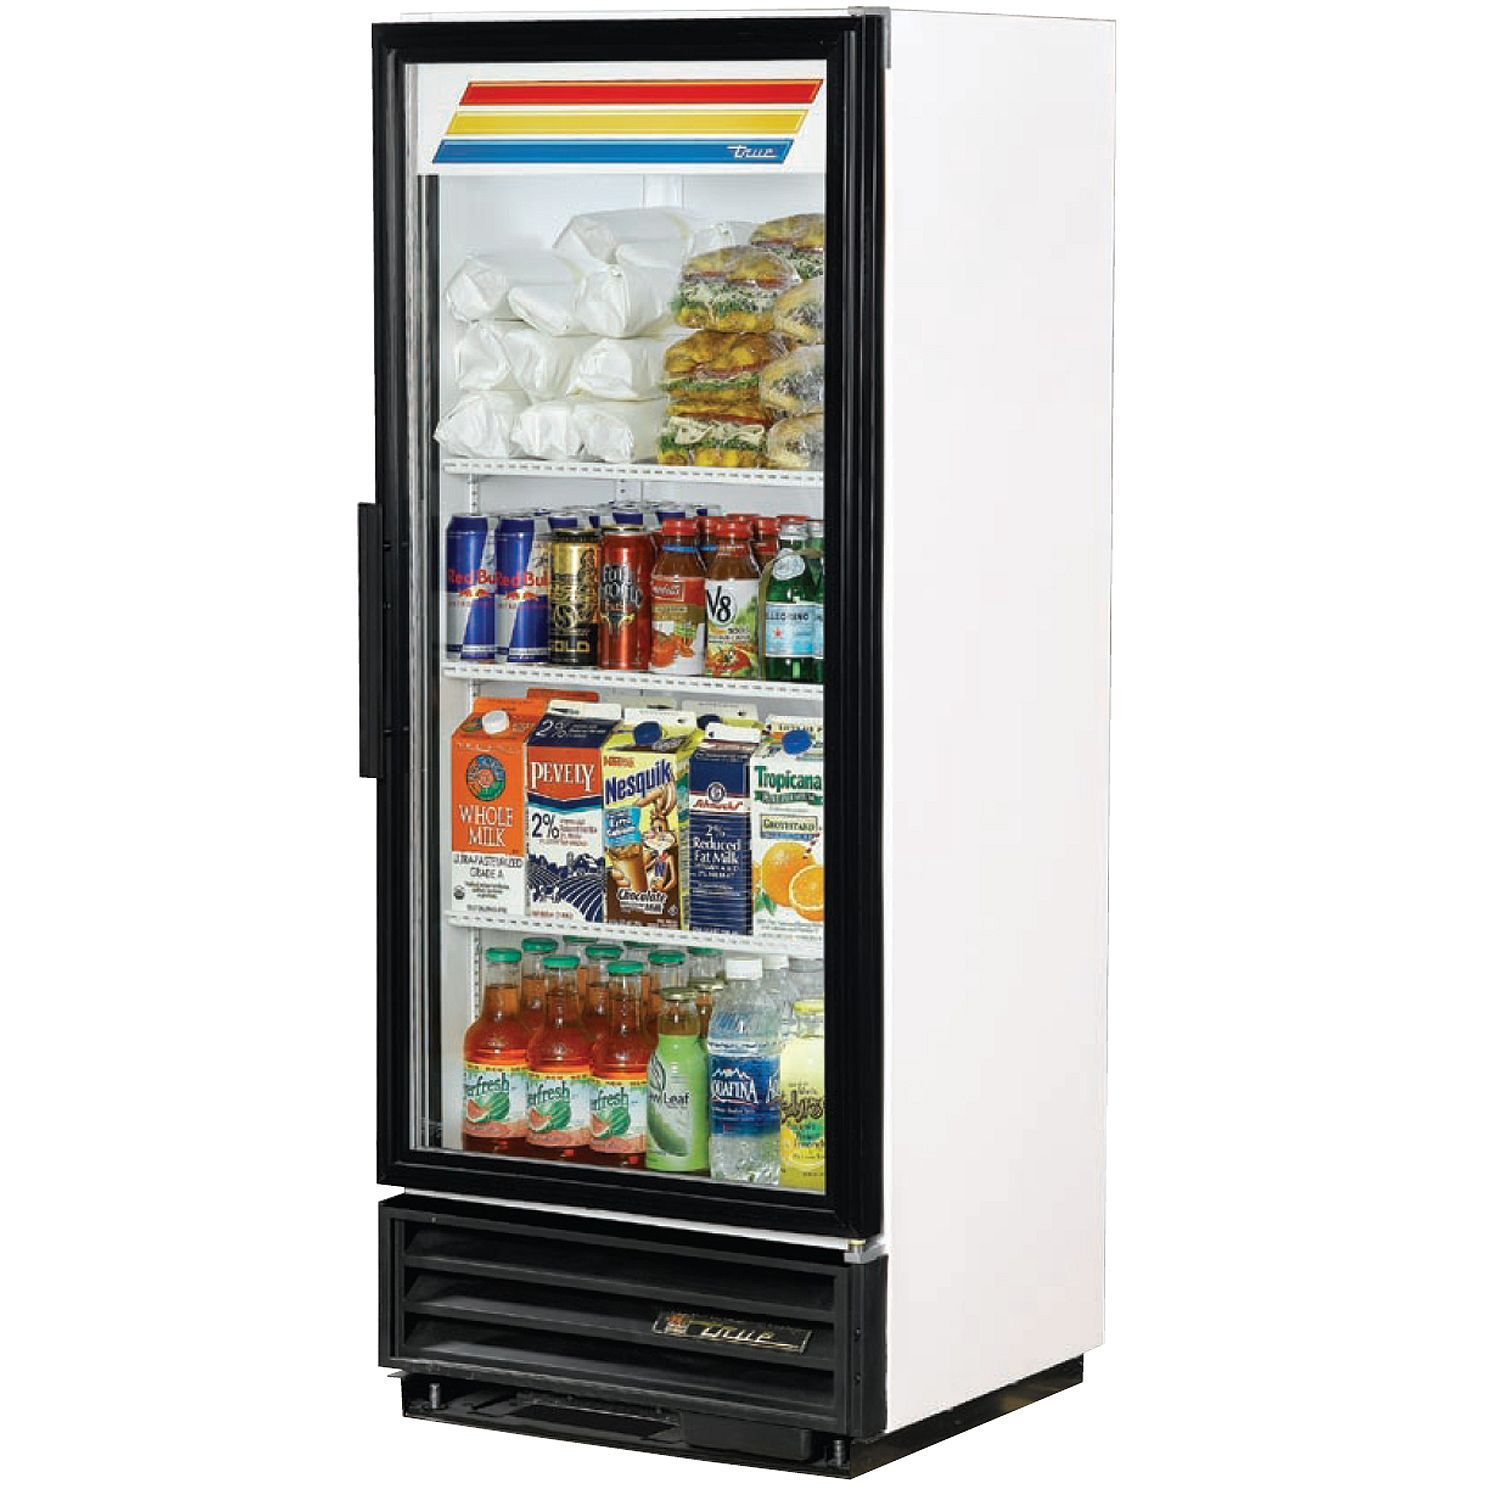 Illustration of Glass Front Refrigerator for Home Showcasing Shop ...